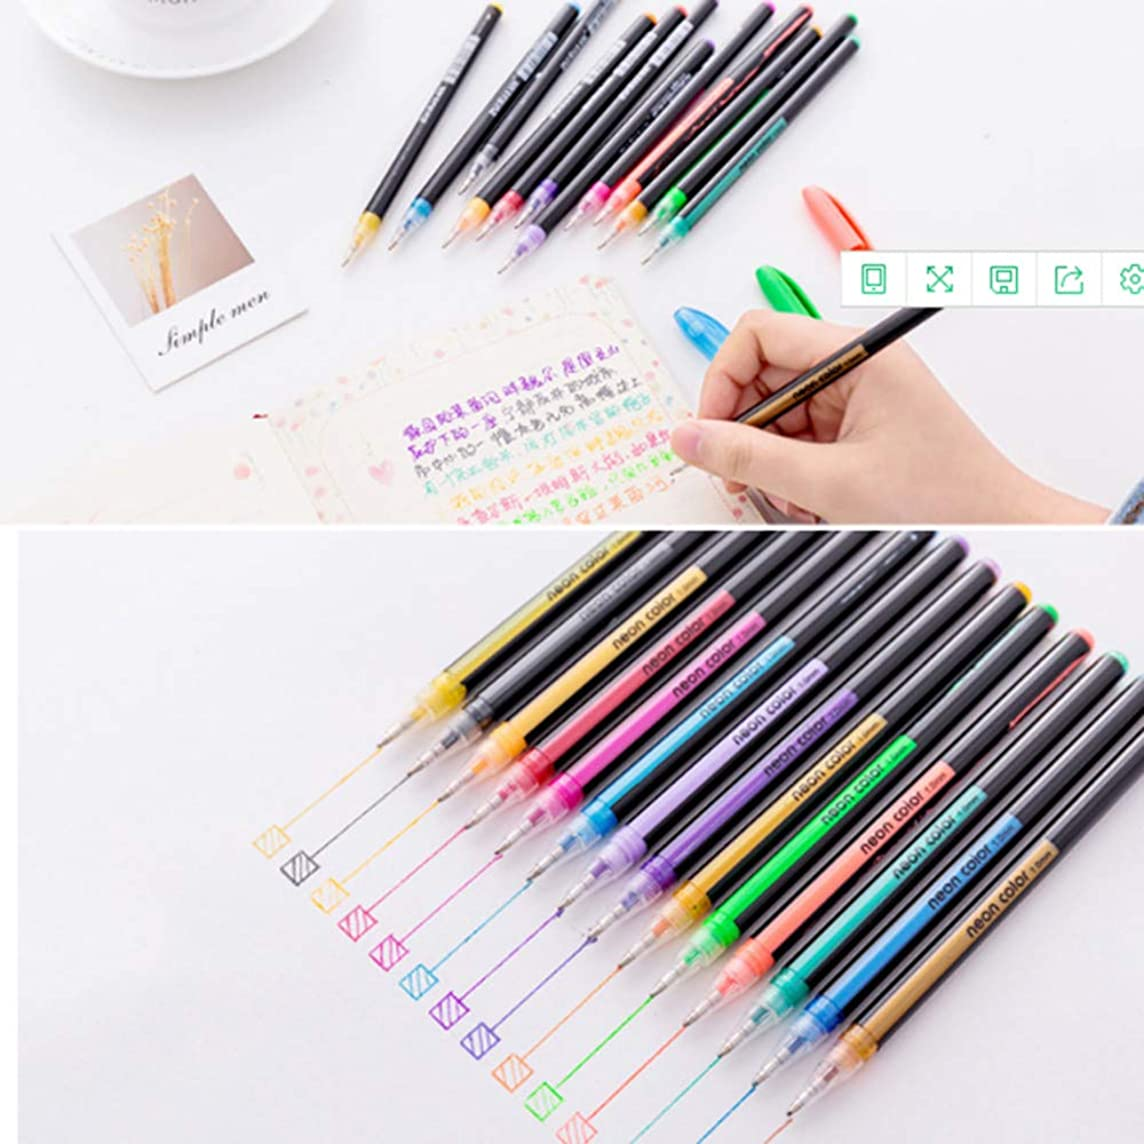 ViShow Bullet Journal Colored Pens Set,16 Assorted Colors Fineliner Pens,Perfect for Bullet Journal Planner Writing Note Calendar Coloring Art Office School Supplies (Multicolor)